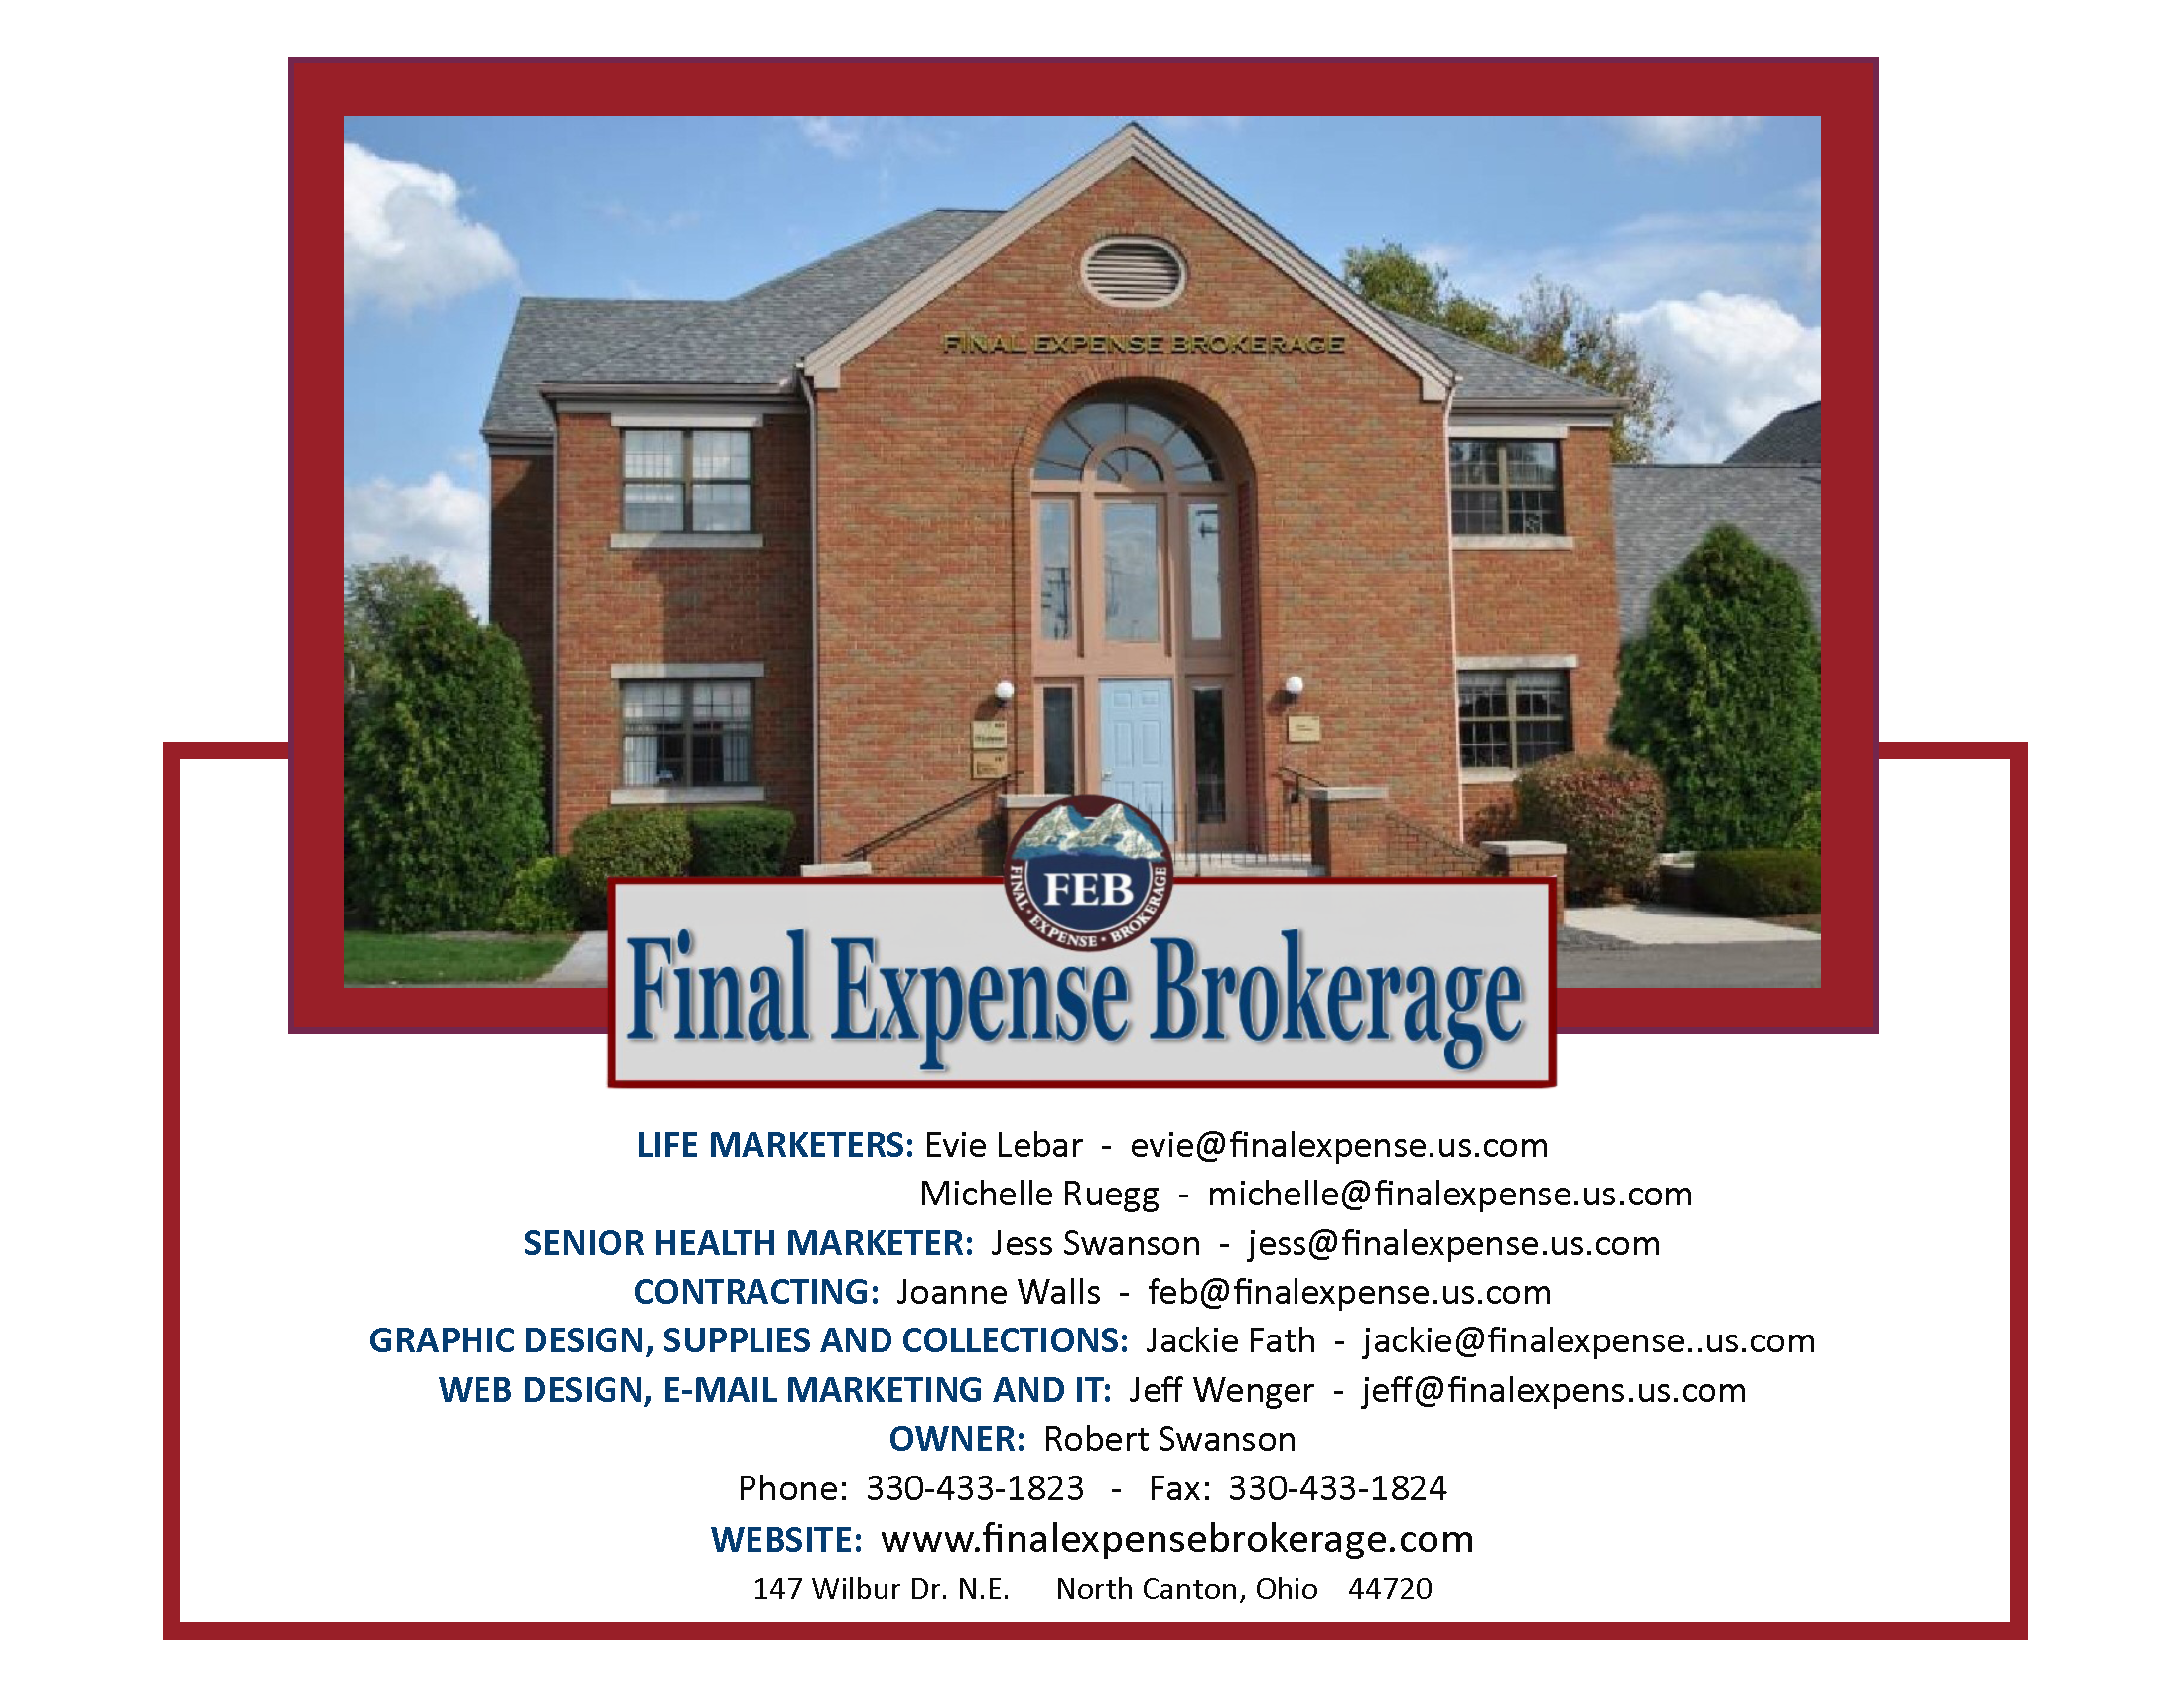 Final Expense Brokerage World Headquarters